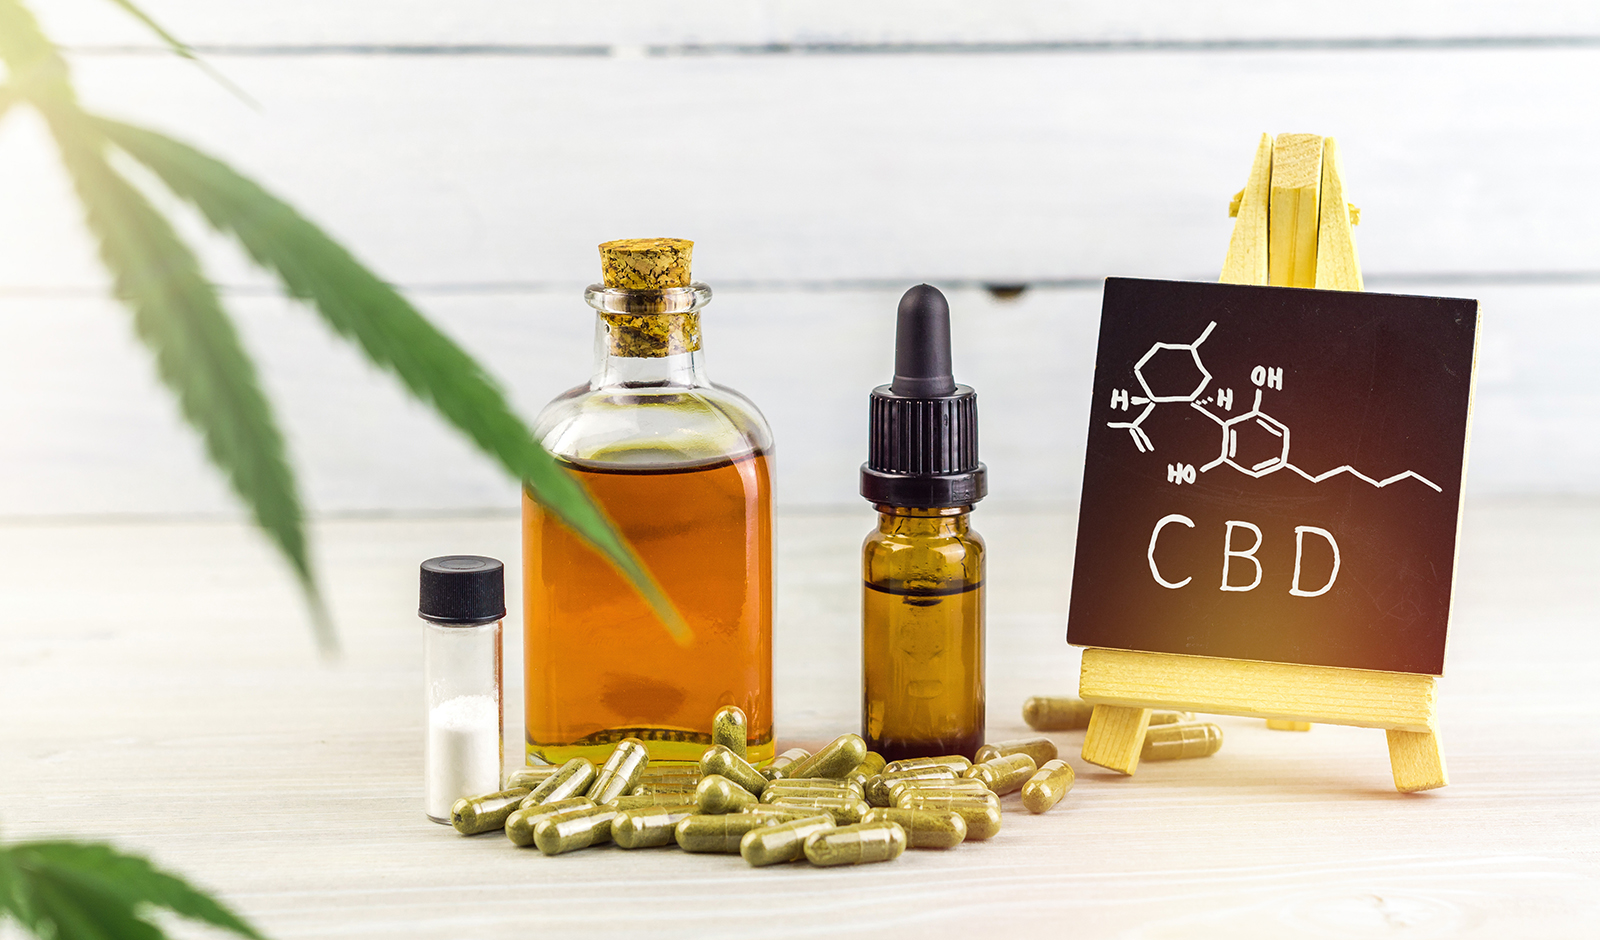 cbd-for-pain-relief-things-you-need-to-know